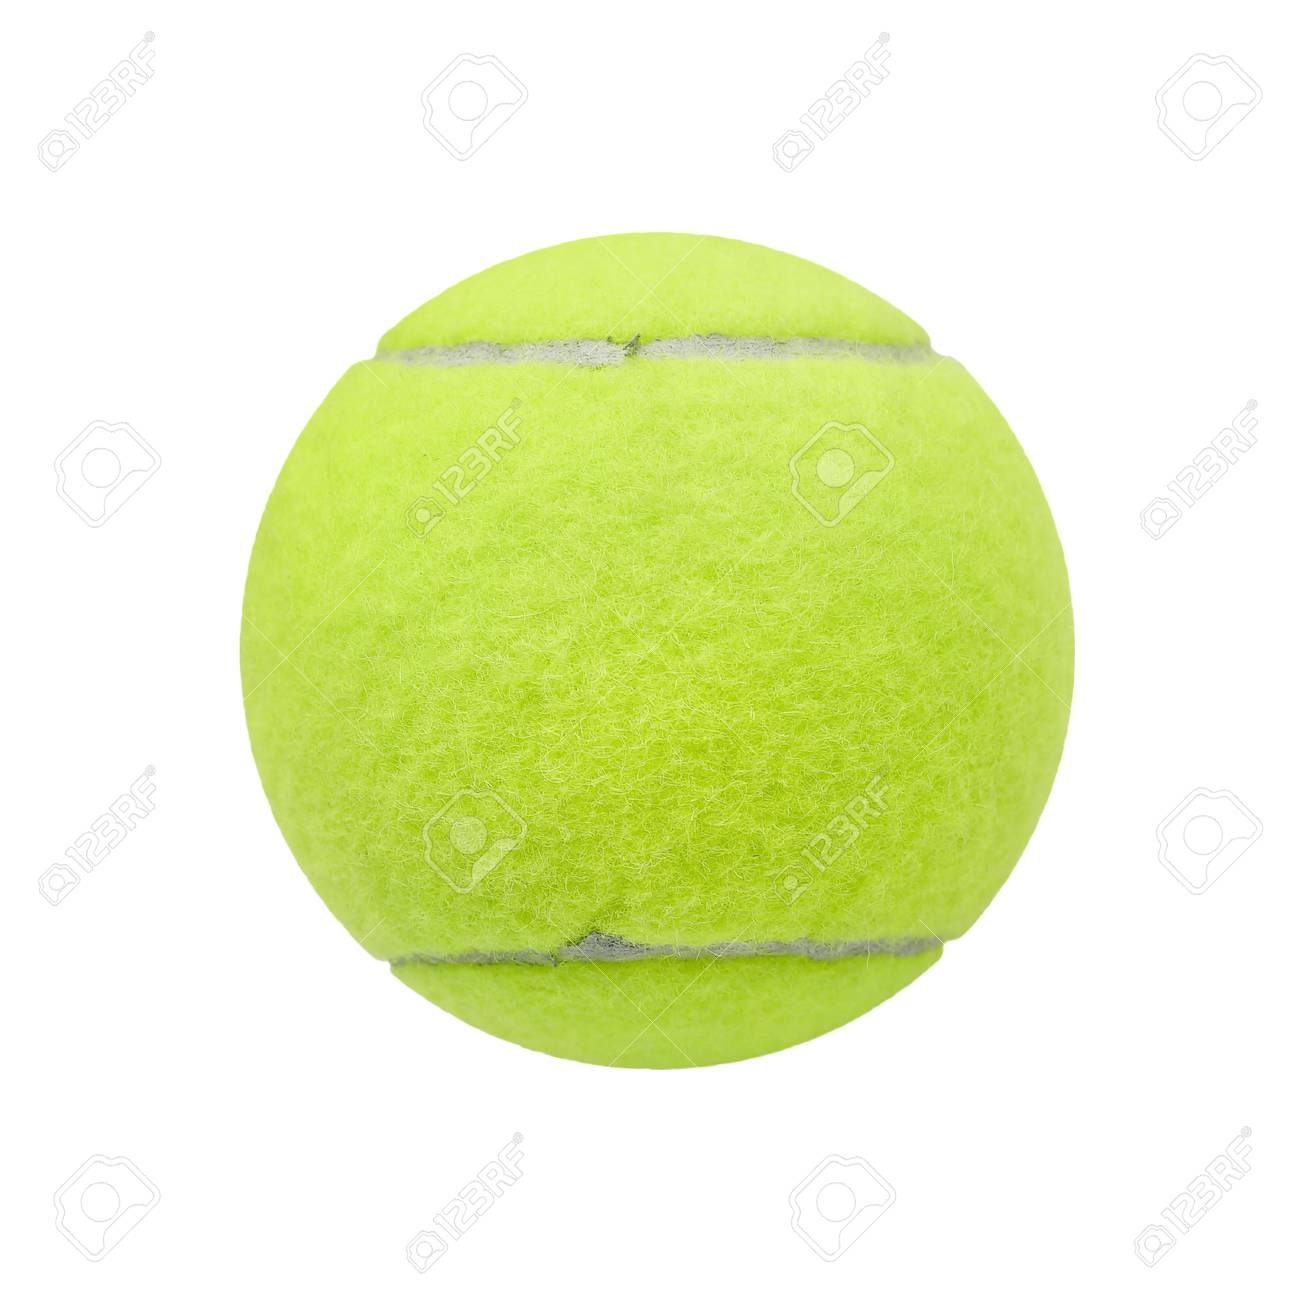 Exotic Yellow Color Tennis Ball Isolated On White Background Stock